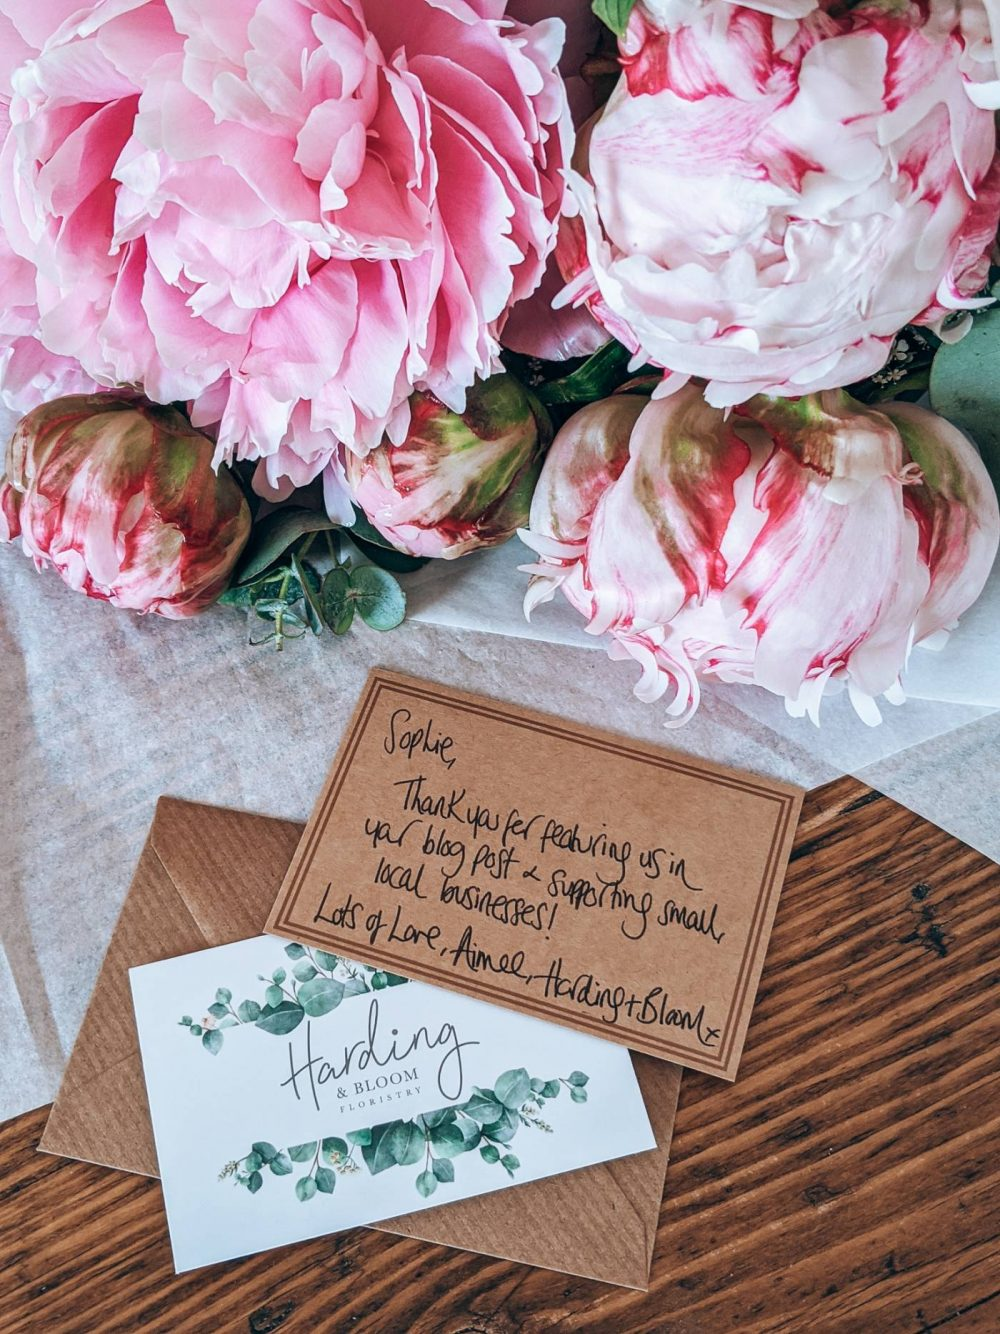 A photo of pink peonies from Harding in Bloom with a handwritten note that reads 'dear sophie, thank you for featuring us on your blog and supporting local business, love aimee, harding and bloom'